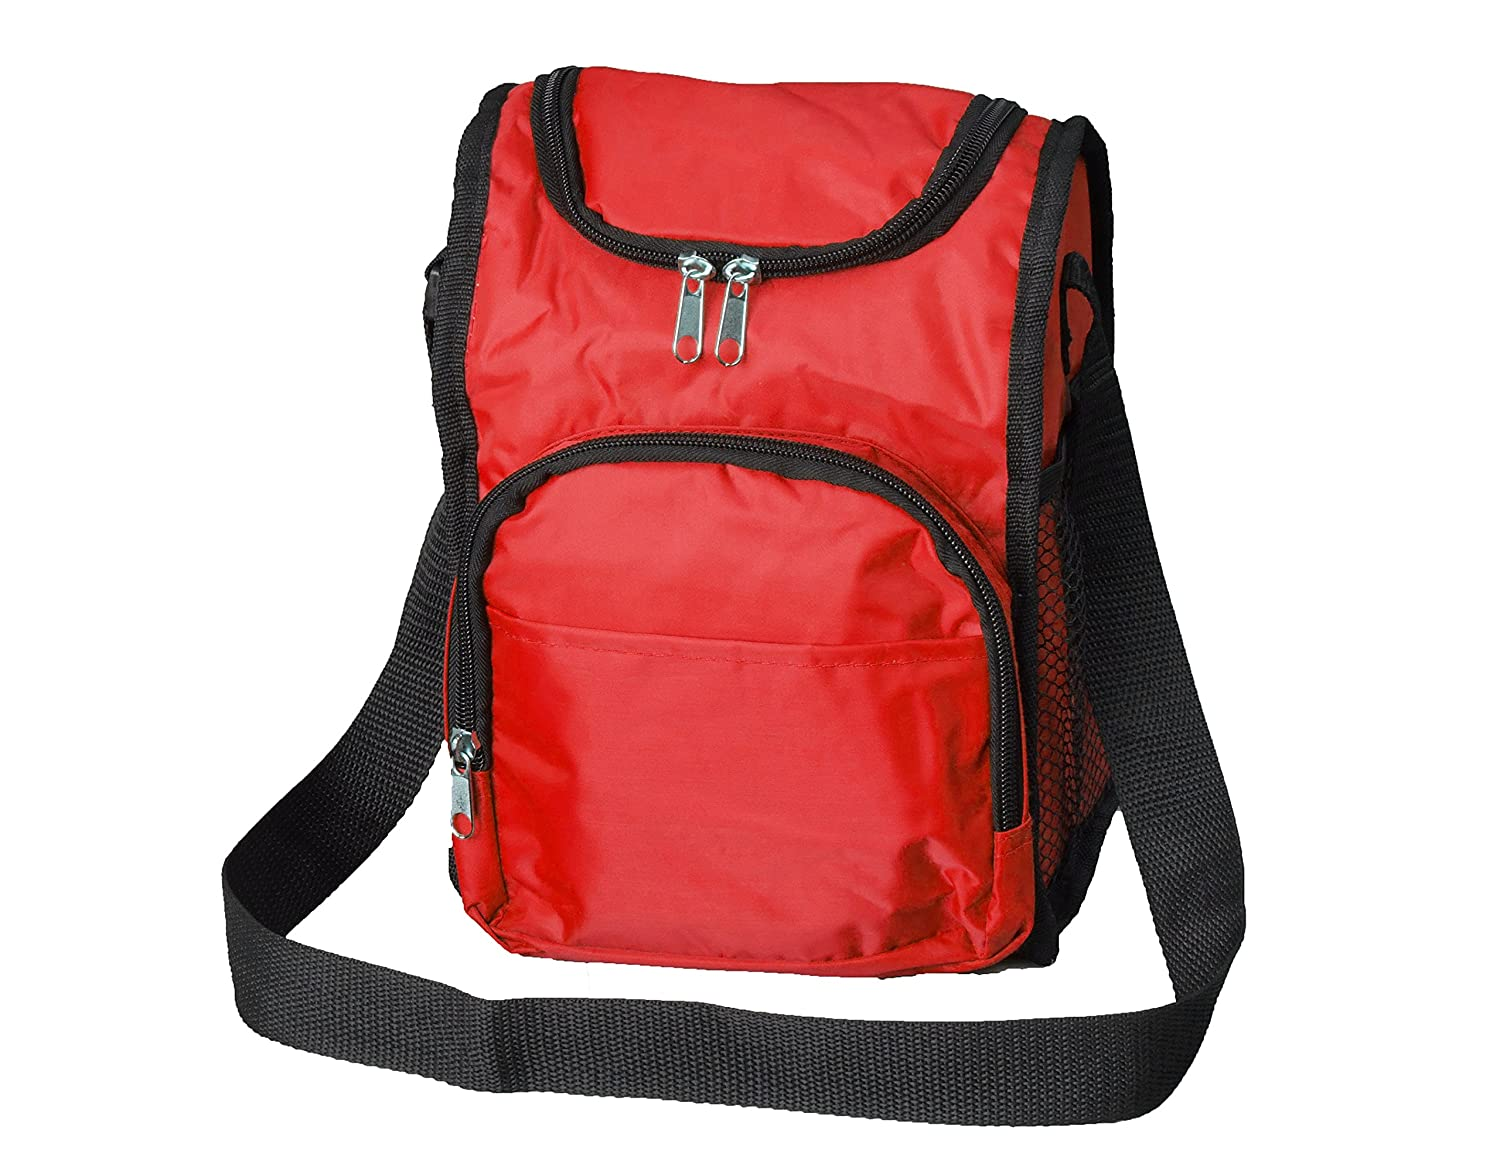 Lunchboxes for Boys - Insulated Boys Lunch Boxes, Thermal Red Lunch Bags for Kids School by Bayfield Bags B019HUXXTS  Red